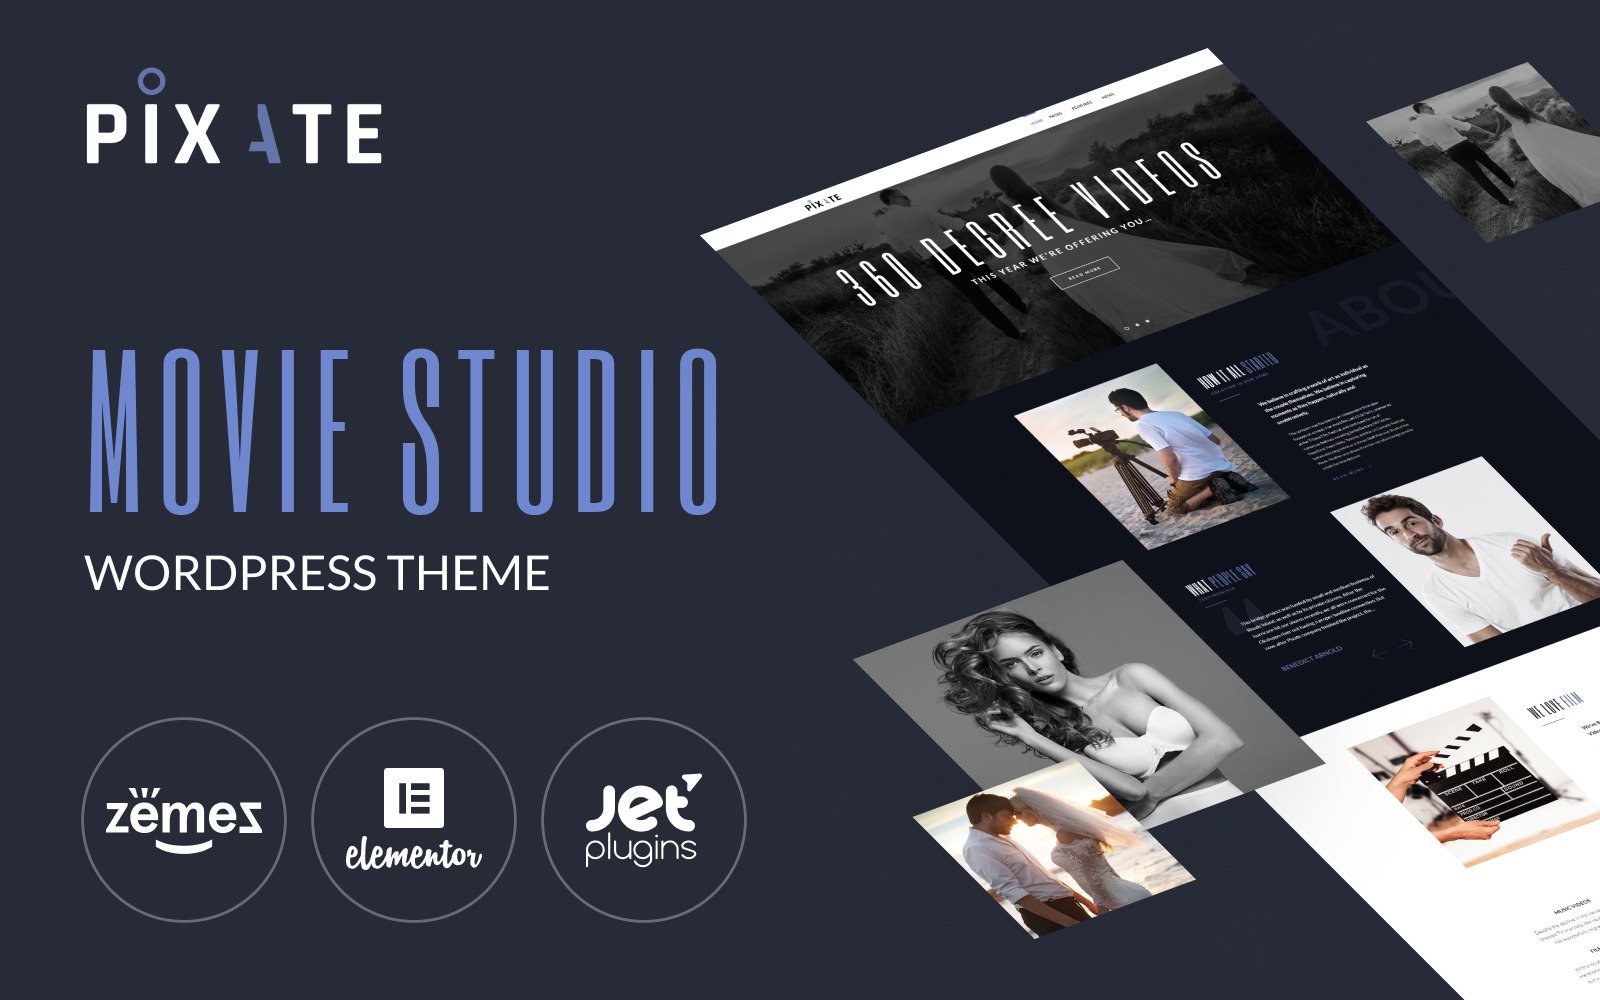 Pixate - Movie Studio WordPress Theme WordPress Theme